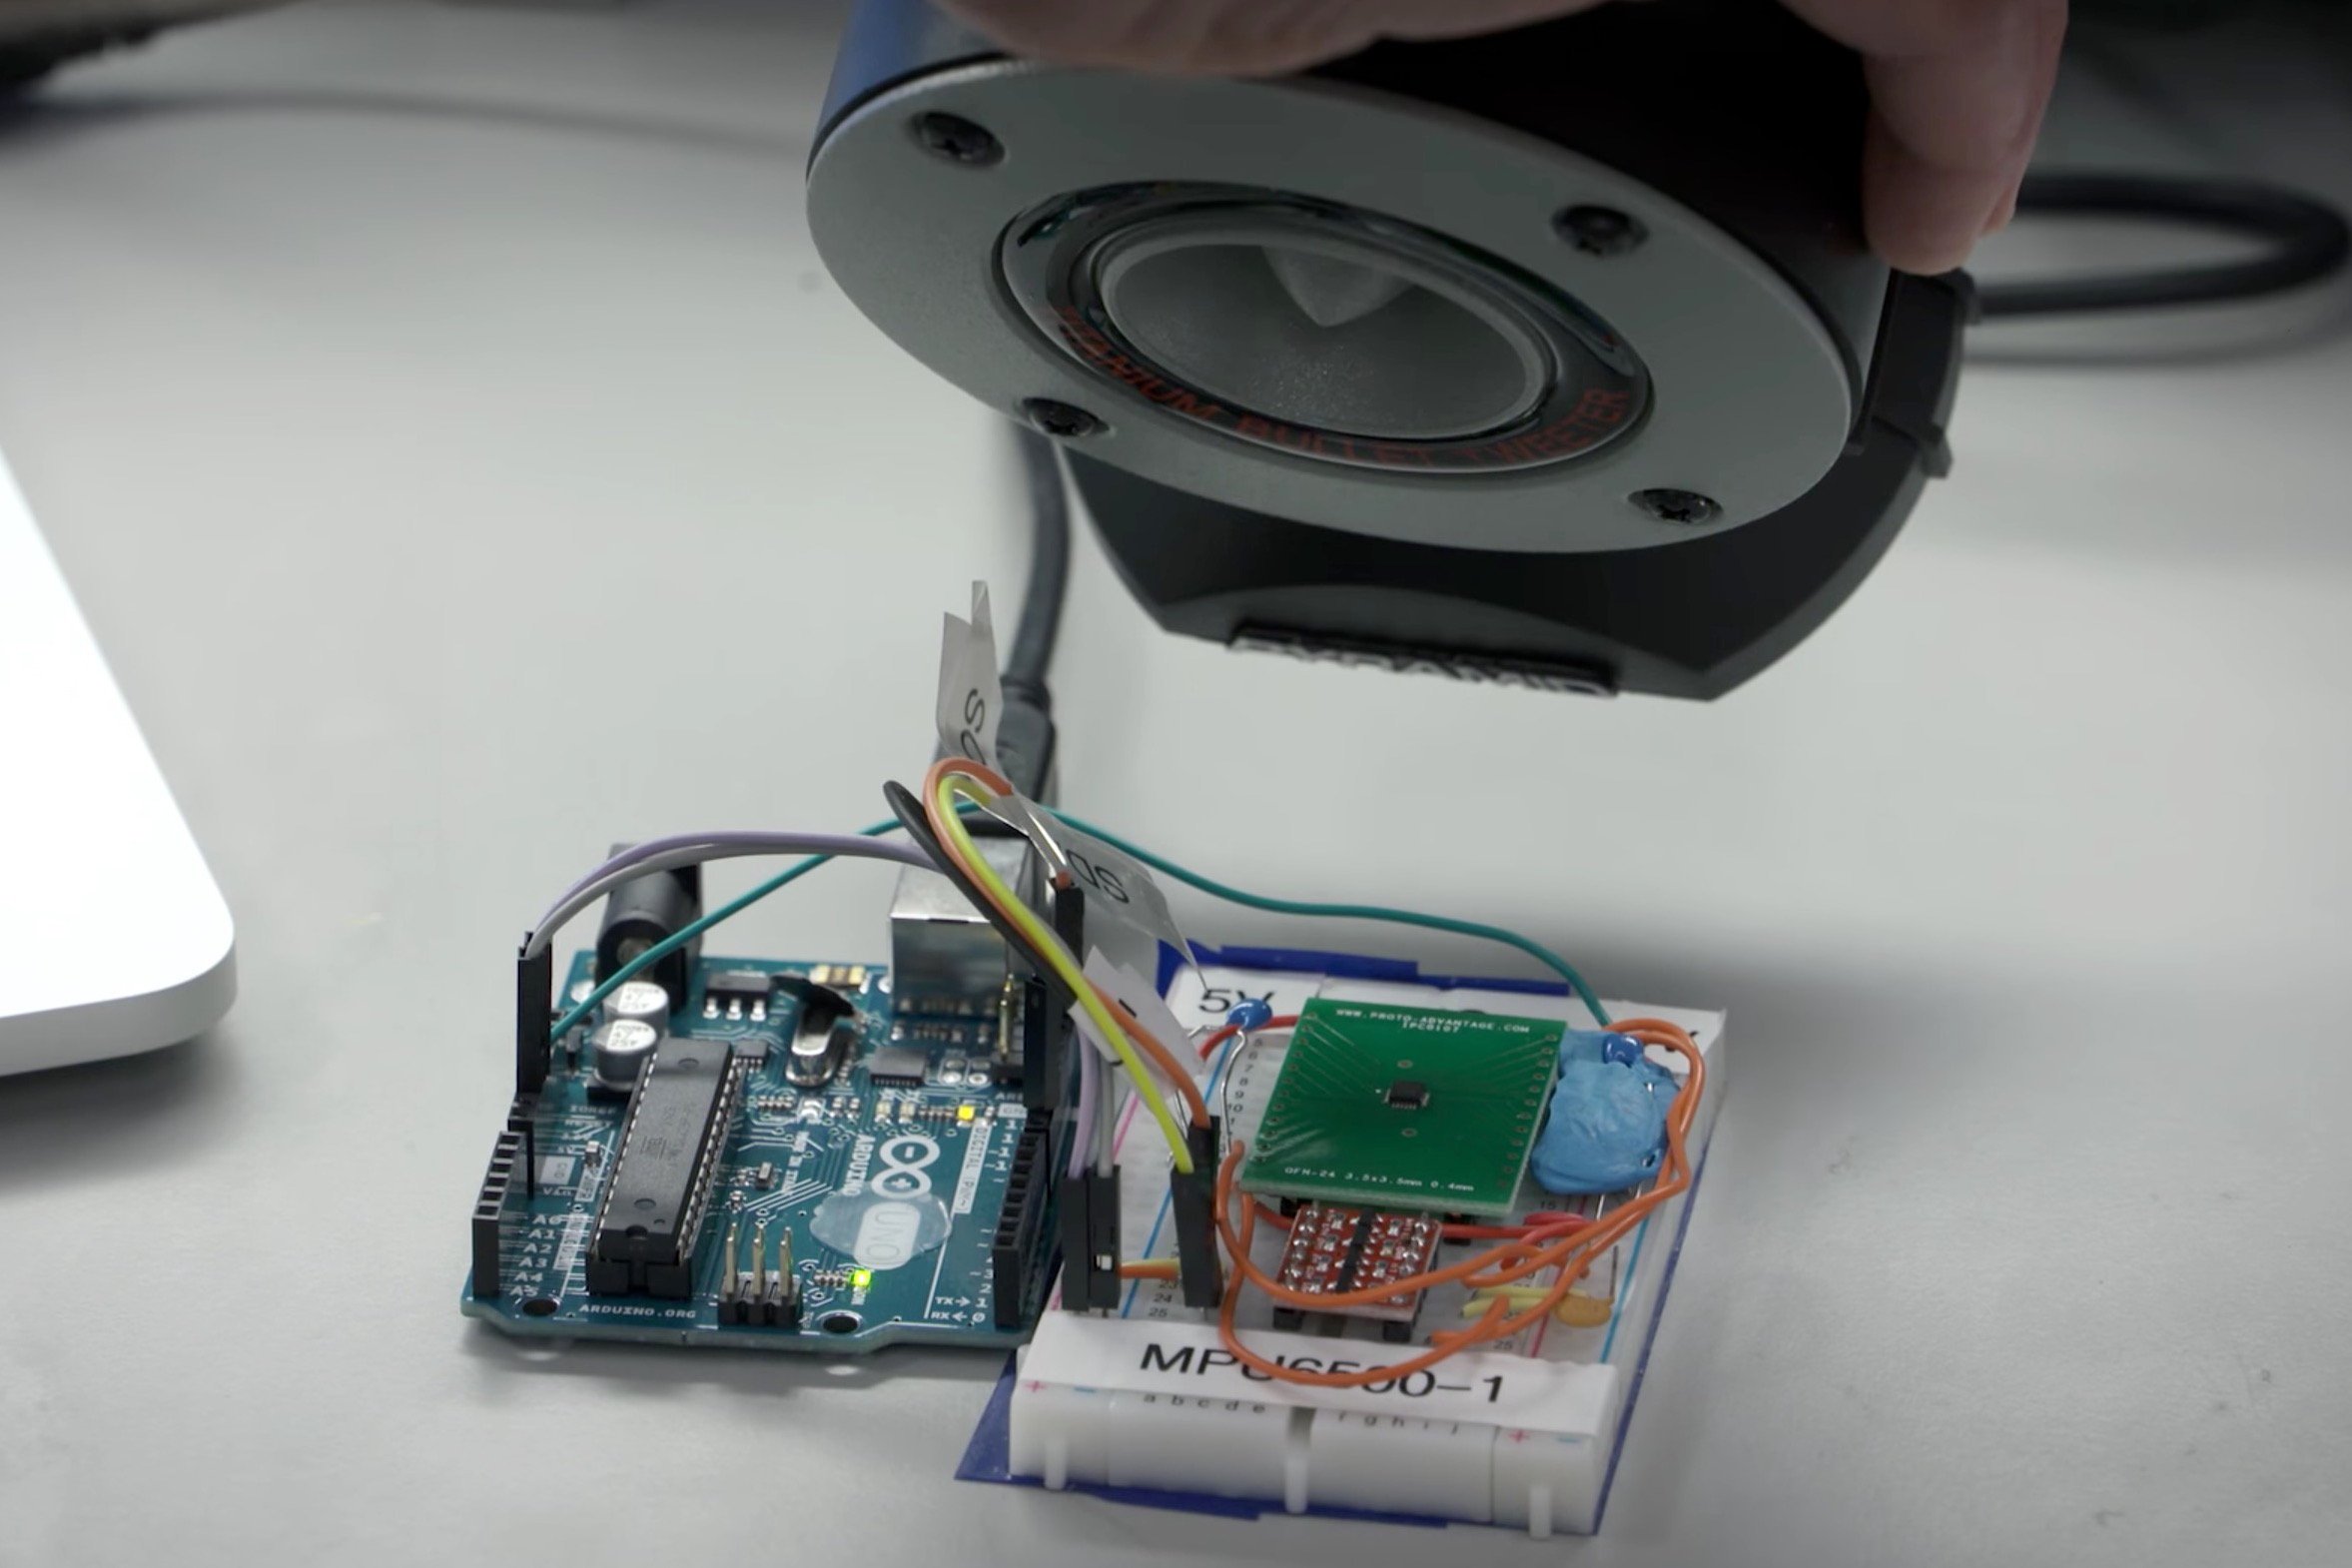 Researchers use $5 speaker to hack IoT devices, smartphones, automobiles